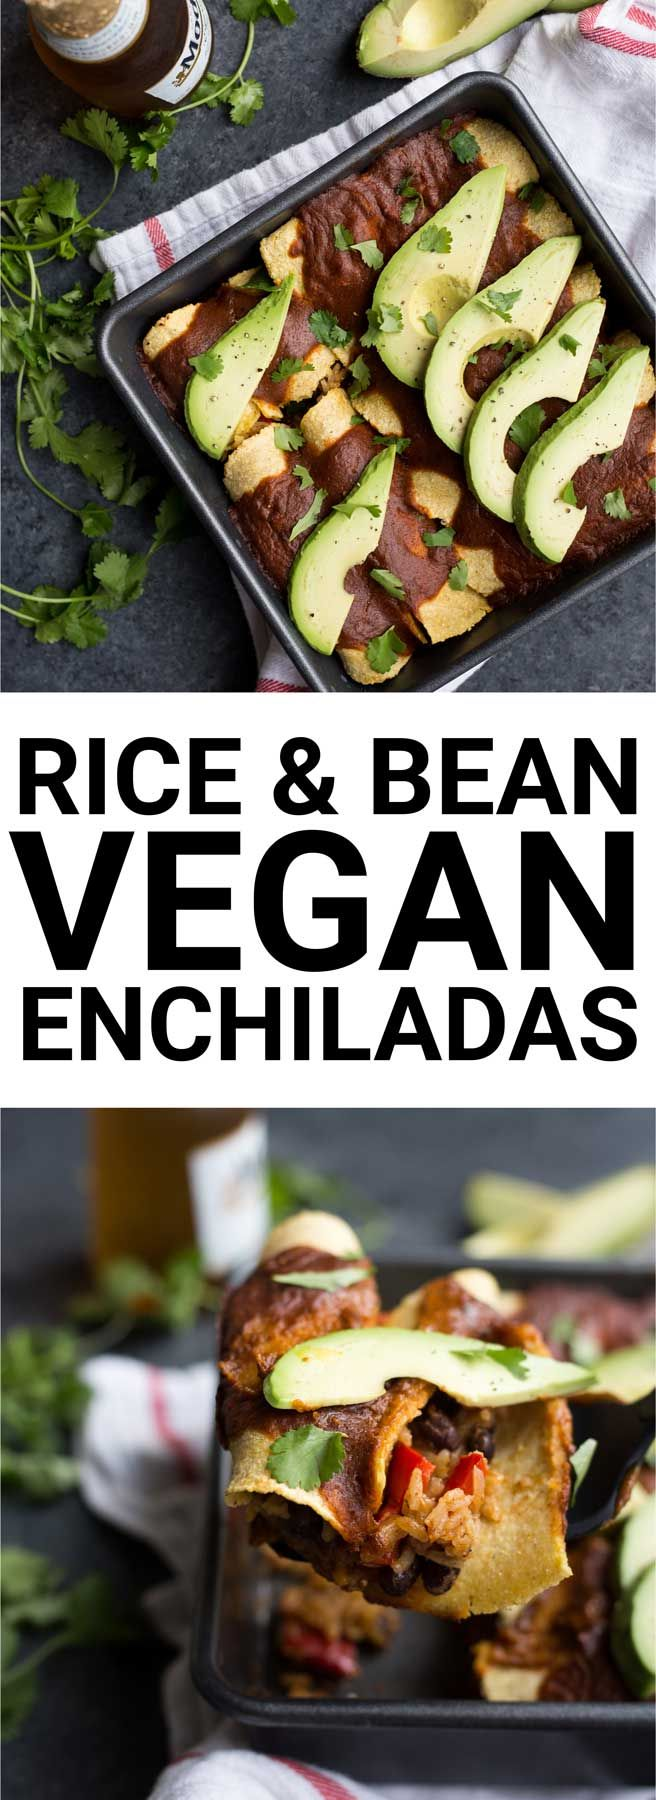 Rice & Bean Vegan Enchiladas: A simple, healthy, and from-scratch enchilada recipe perfect for Cinco de Mayo! Naturally gluten free and vegan. || fooduzzi.com recipe